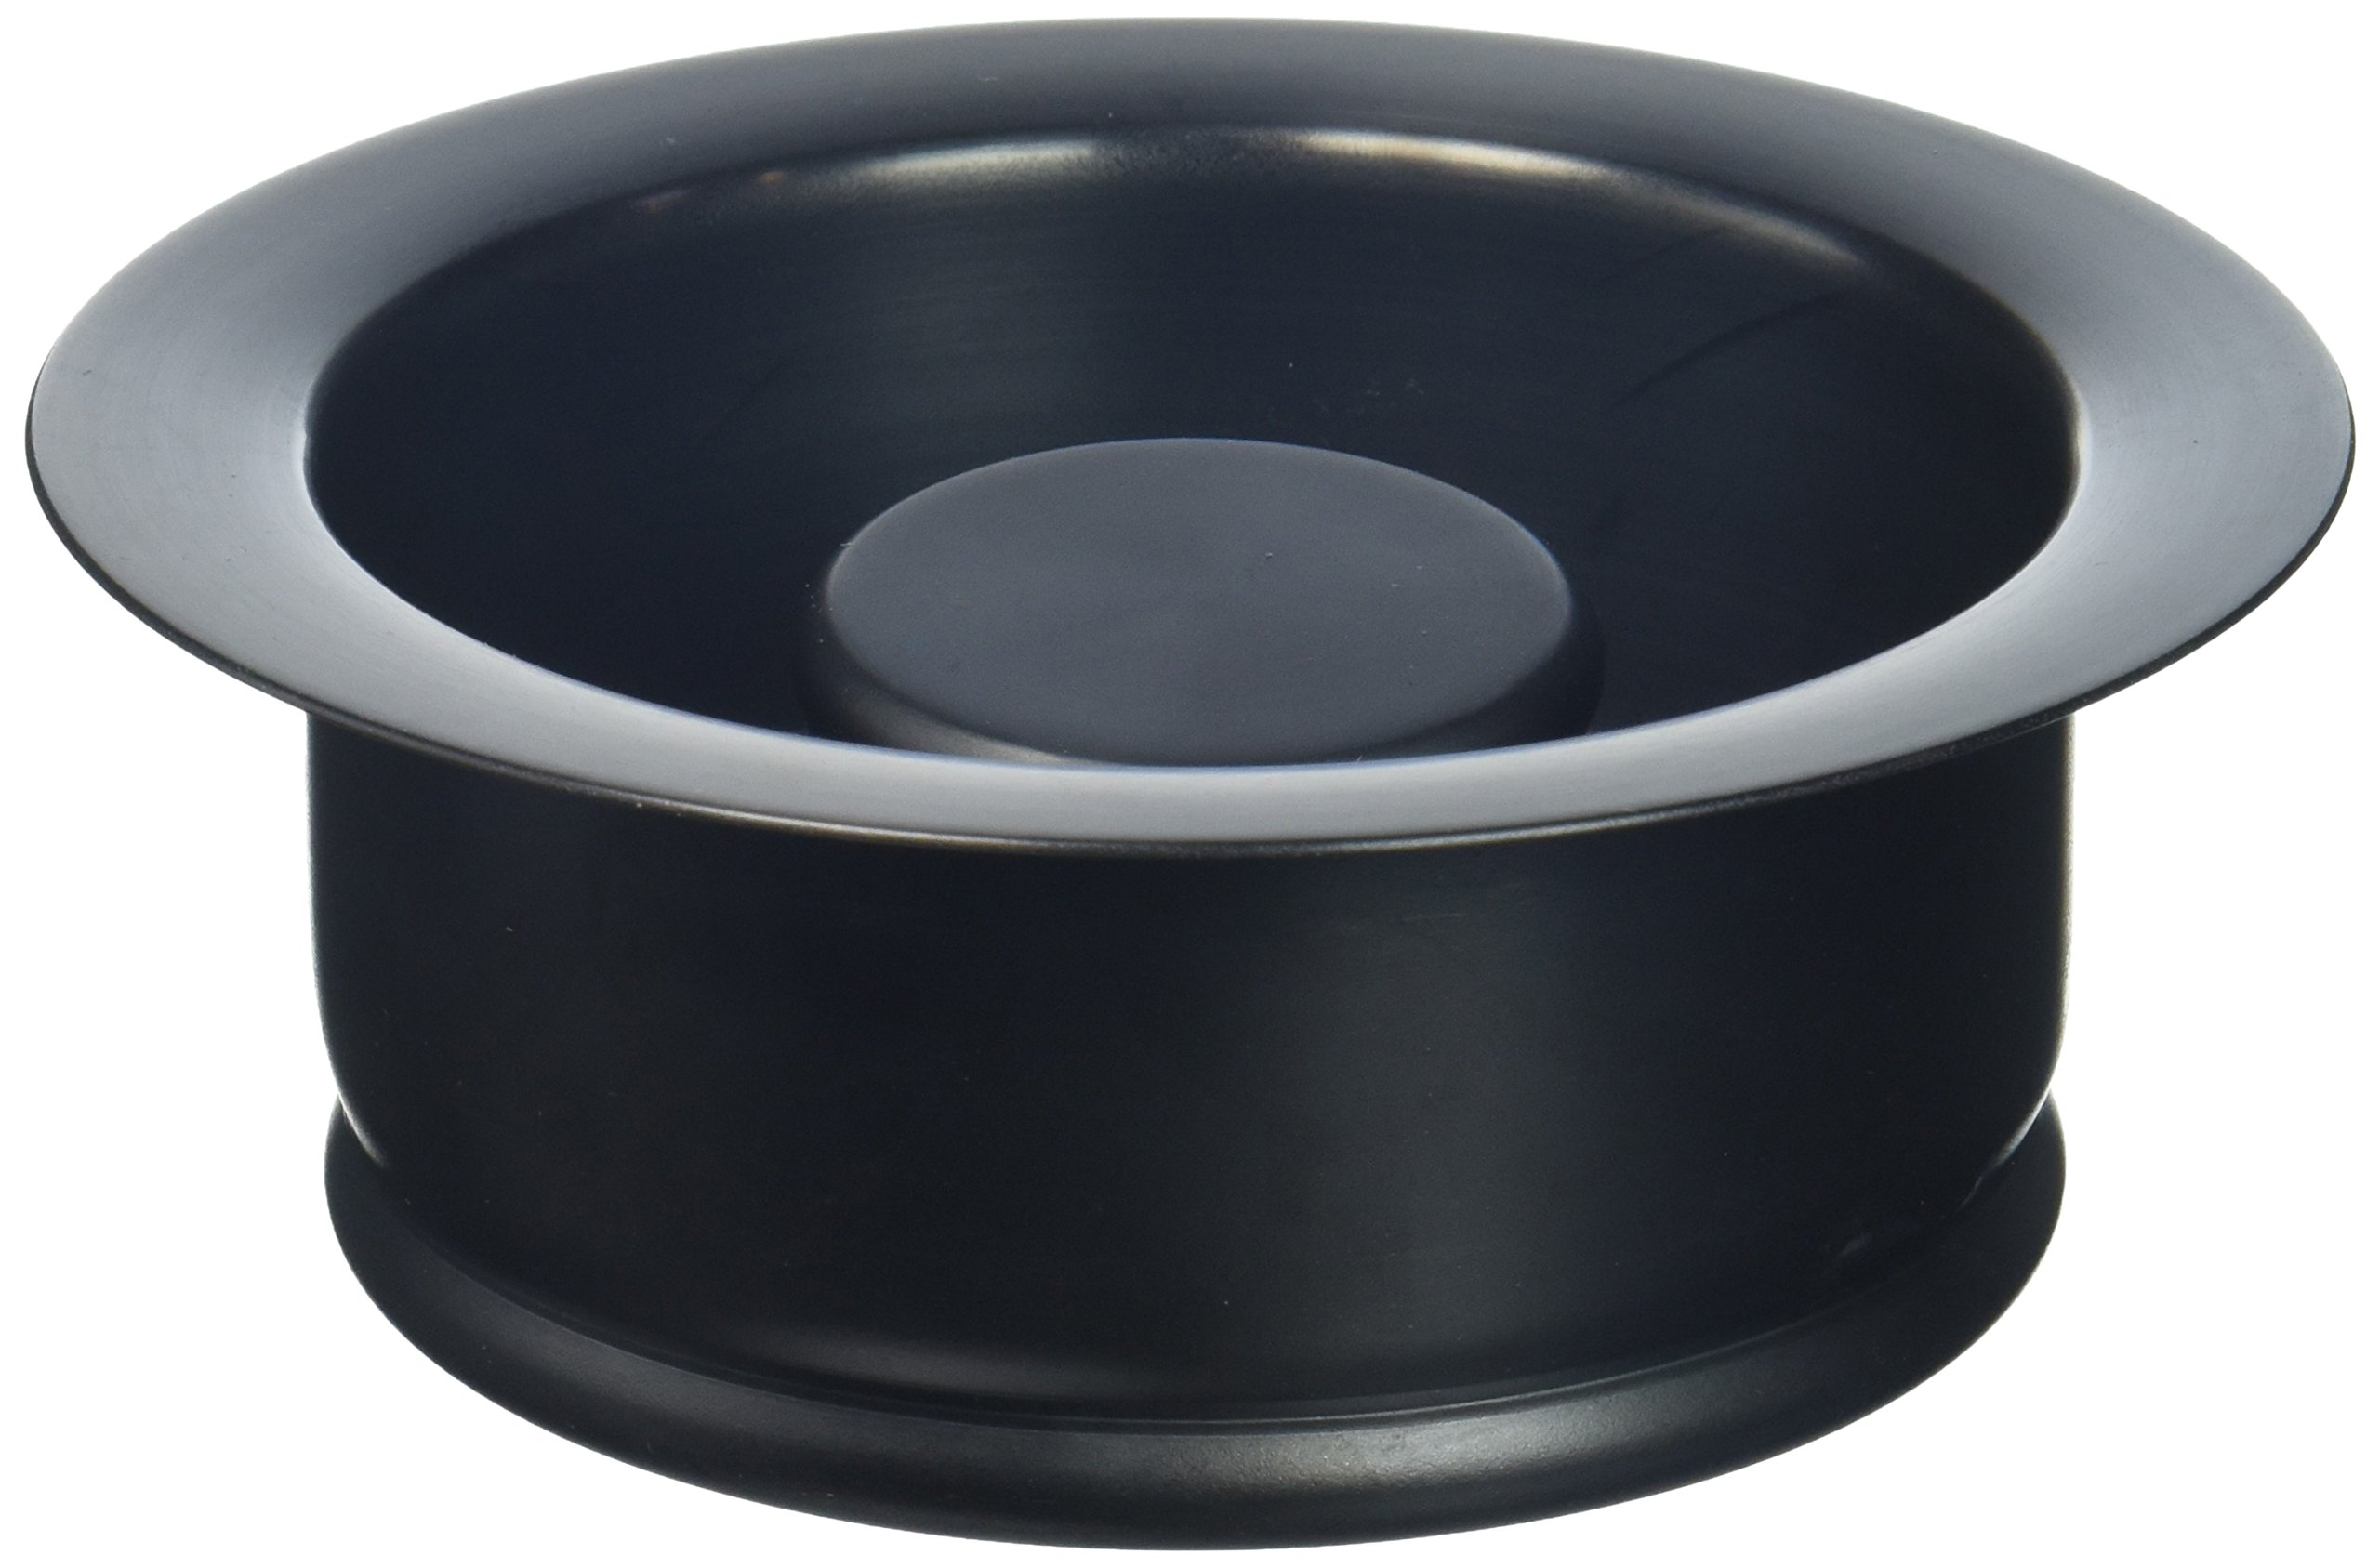 Kingston Brass BS3005 Made to Match Garbage Disposal Flange, Oil Rubbed Bronze by Kingston Brass